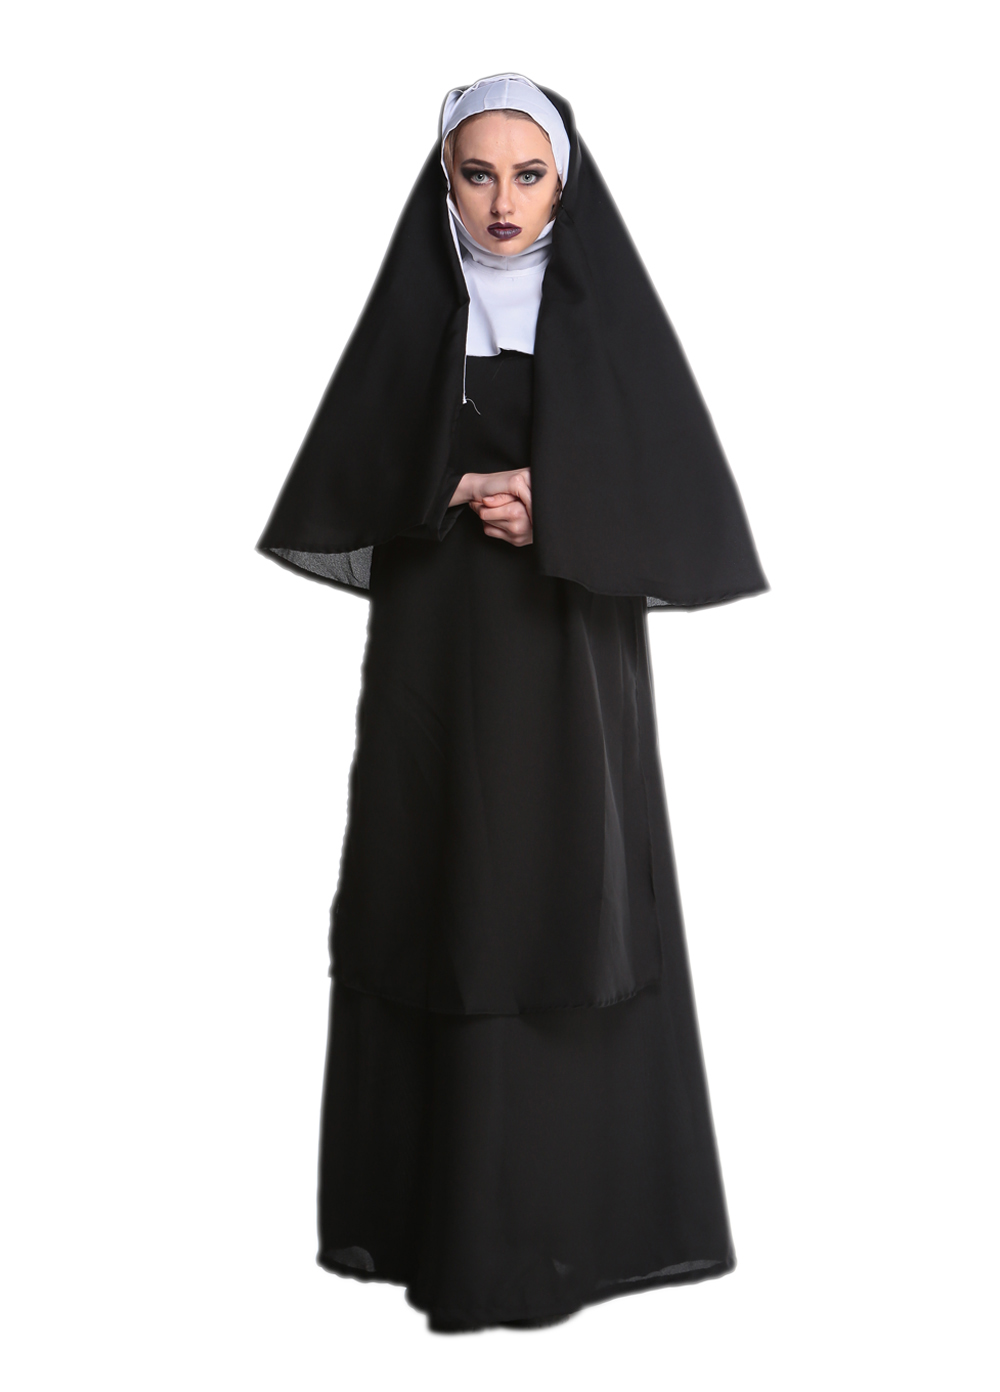 Wholesale Virgin Mary Nuns Costumes for Women Sexy Long Black Nuns Costume Arabic Religion Monk Ghost Uniform Halloween